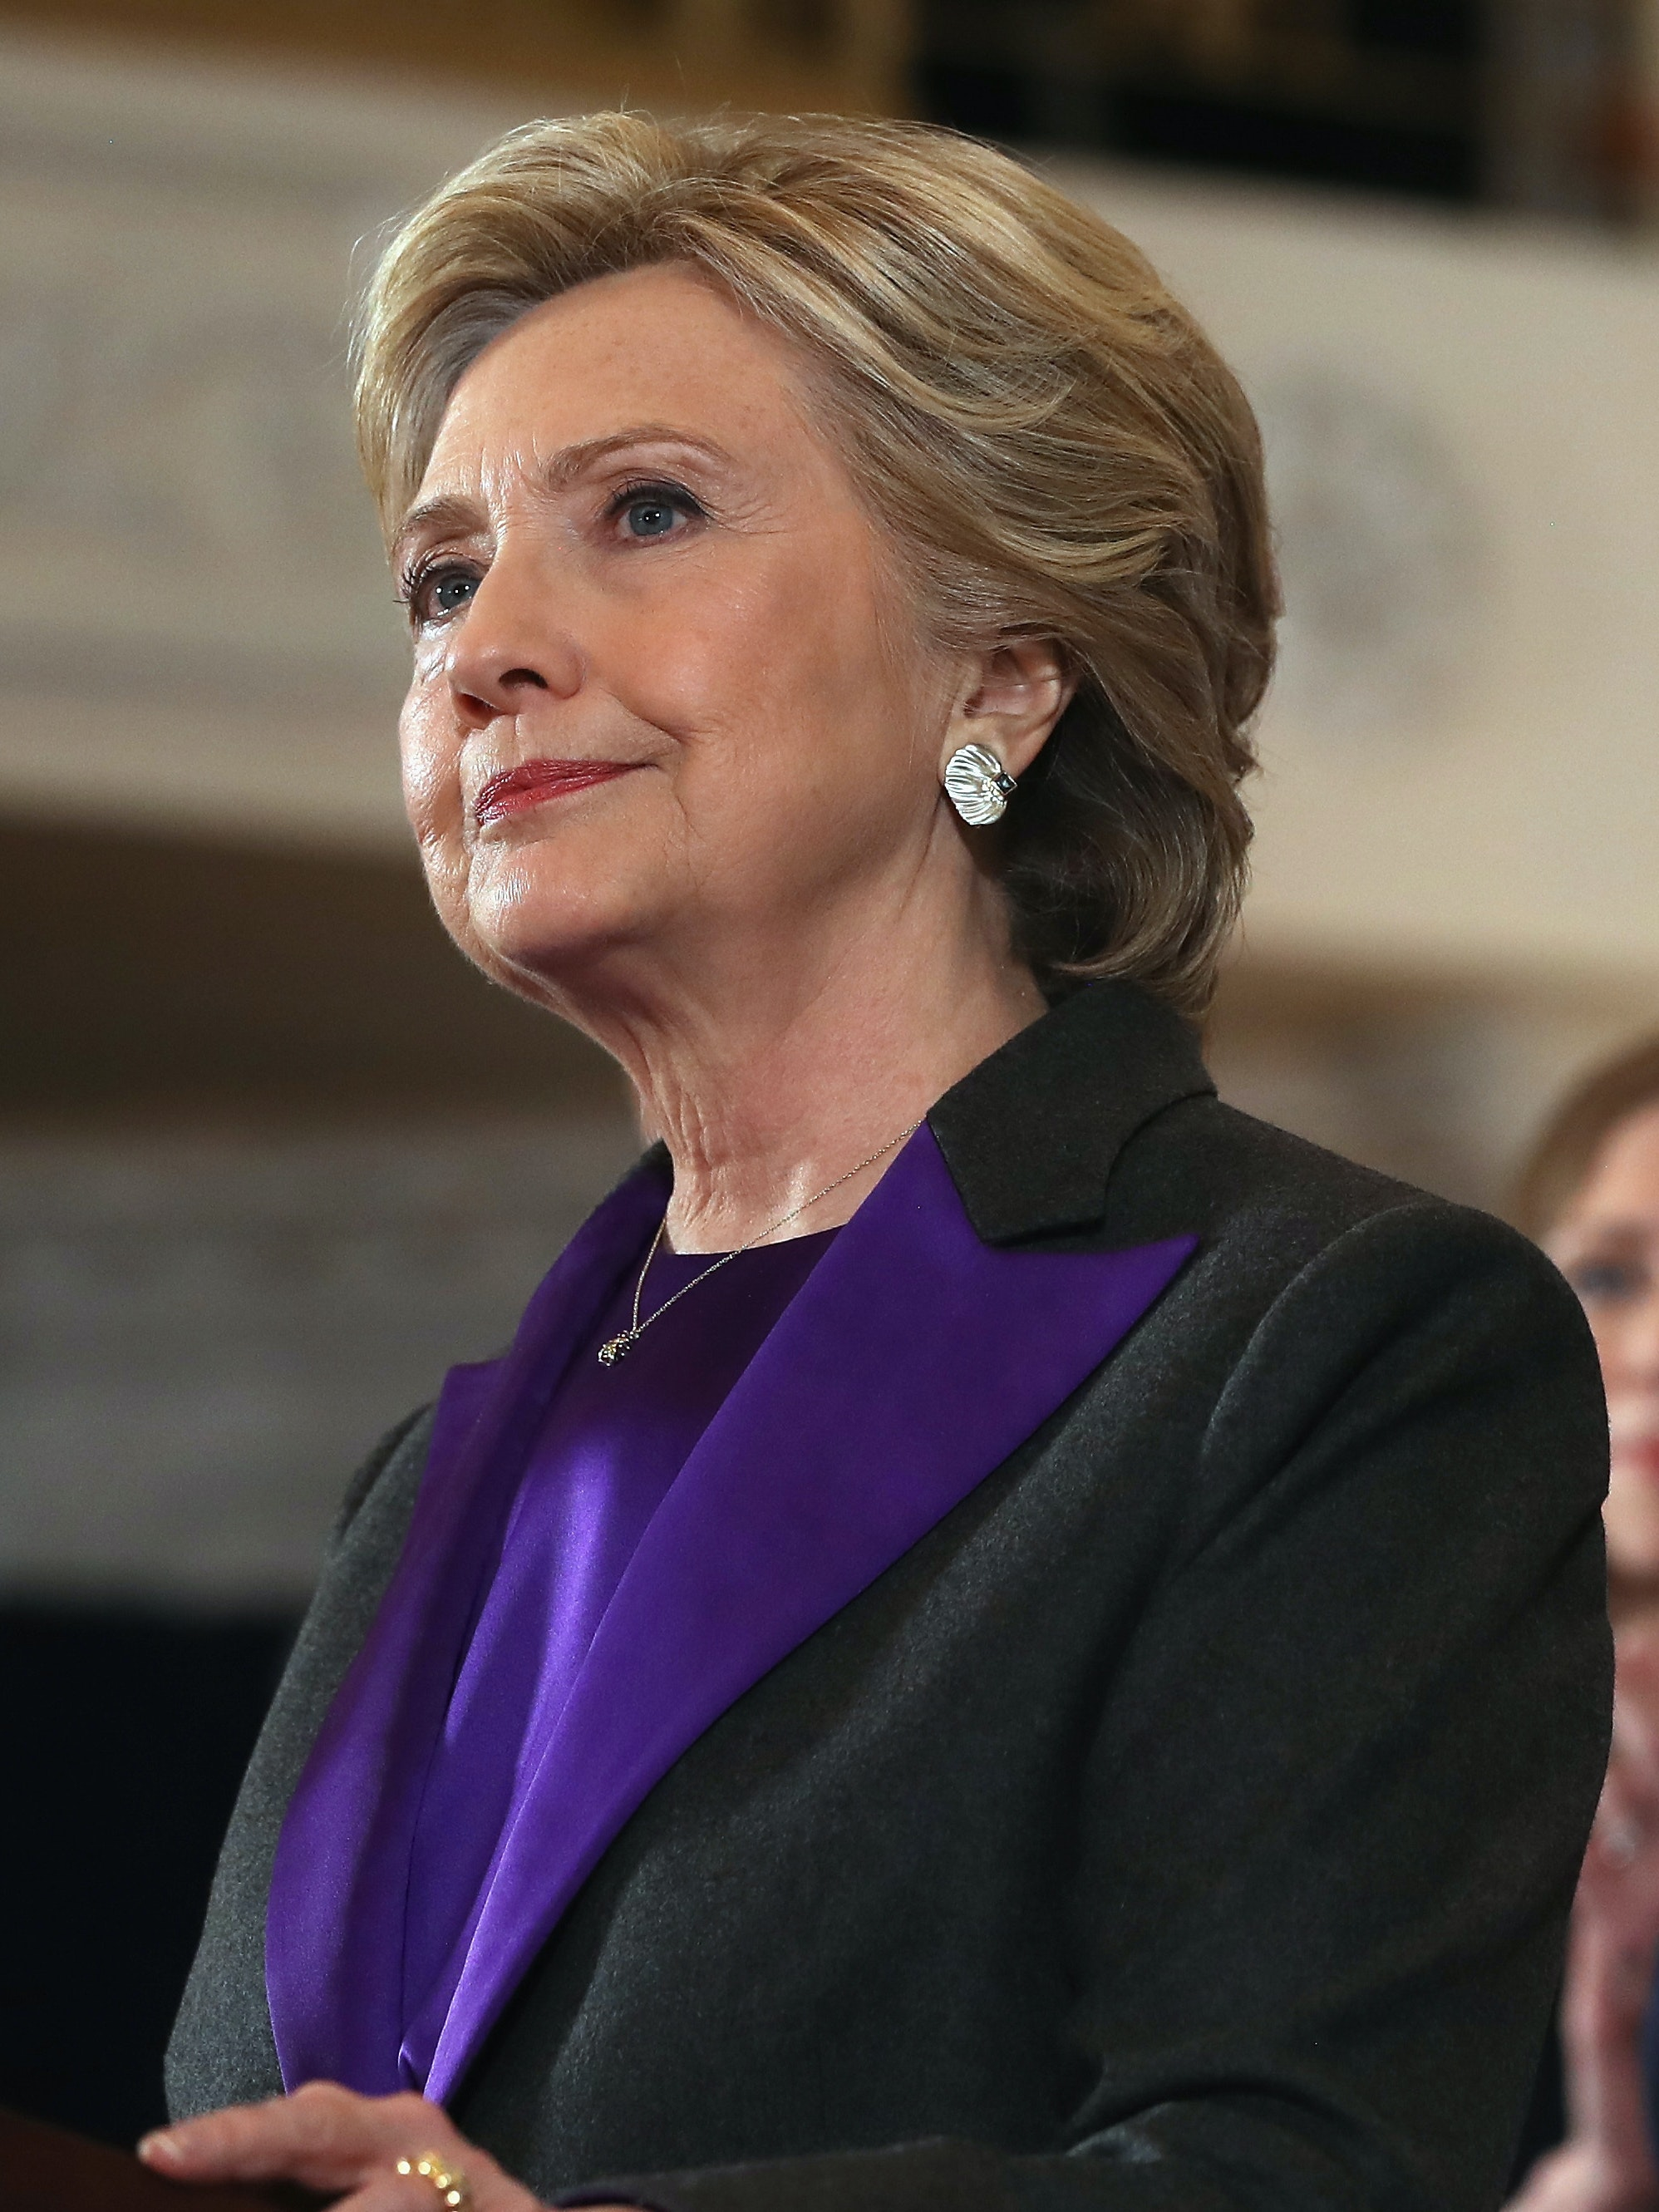 NEW YORK, NY - NOVEMBER 09:  Former Secretary of State Hillary Clinton, accompanied by her husband former President Bill Clinton, concedes the presidential election at the New Yorker Hotel on November 9, 2016 in New York City. Republican candidate Donald Trump won the 2016 presidential election in the early hours of the morning in a widely unforeseen upset.  (Photo by Justin Sullivan/Getty Images)